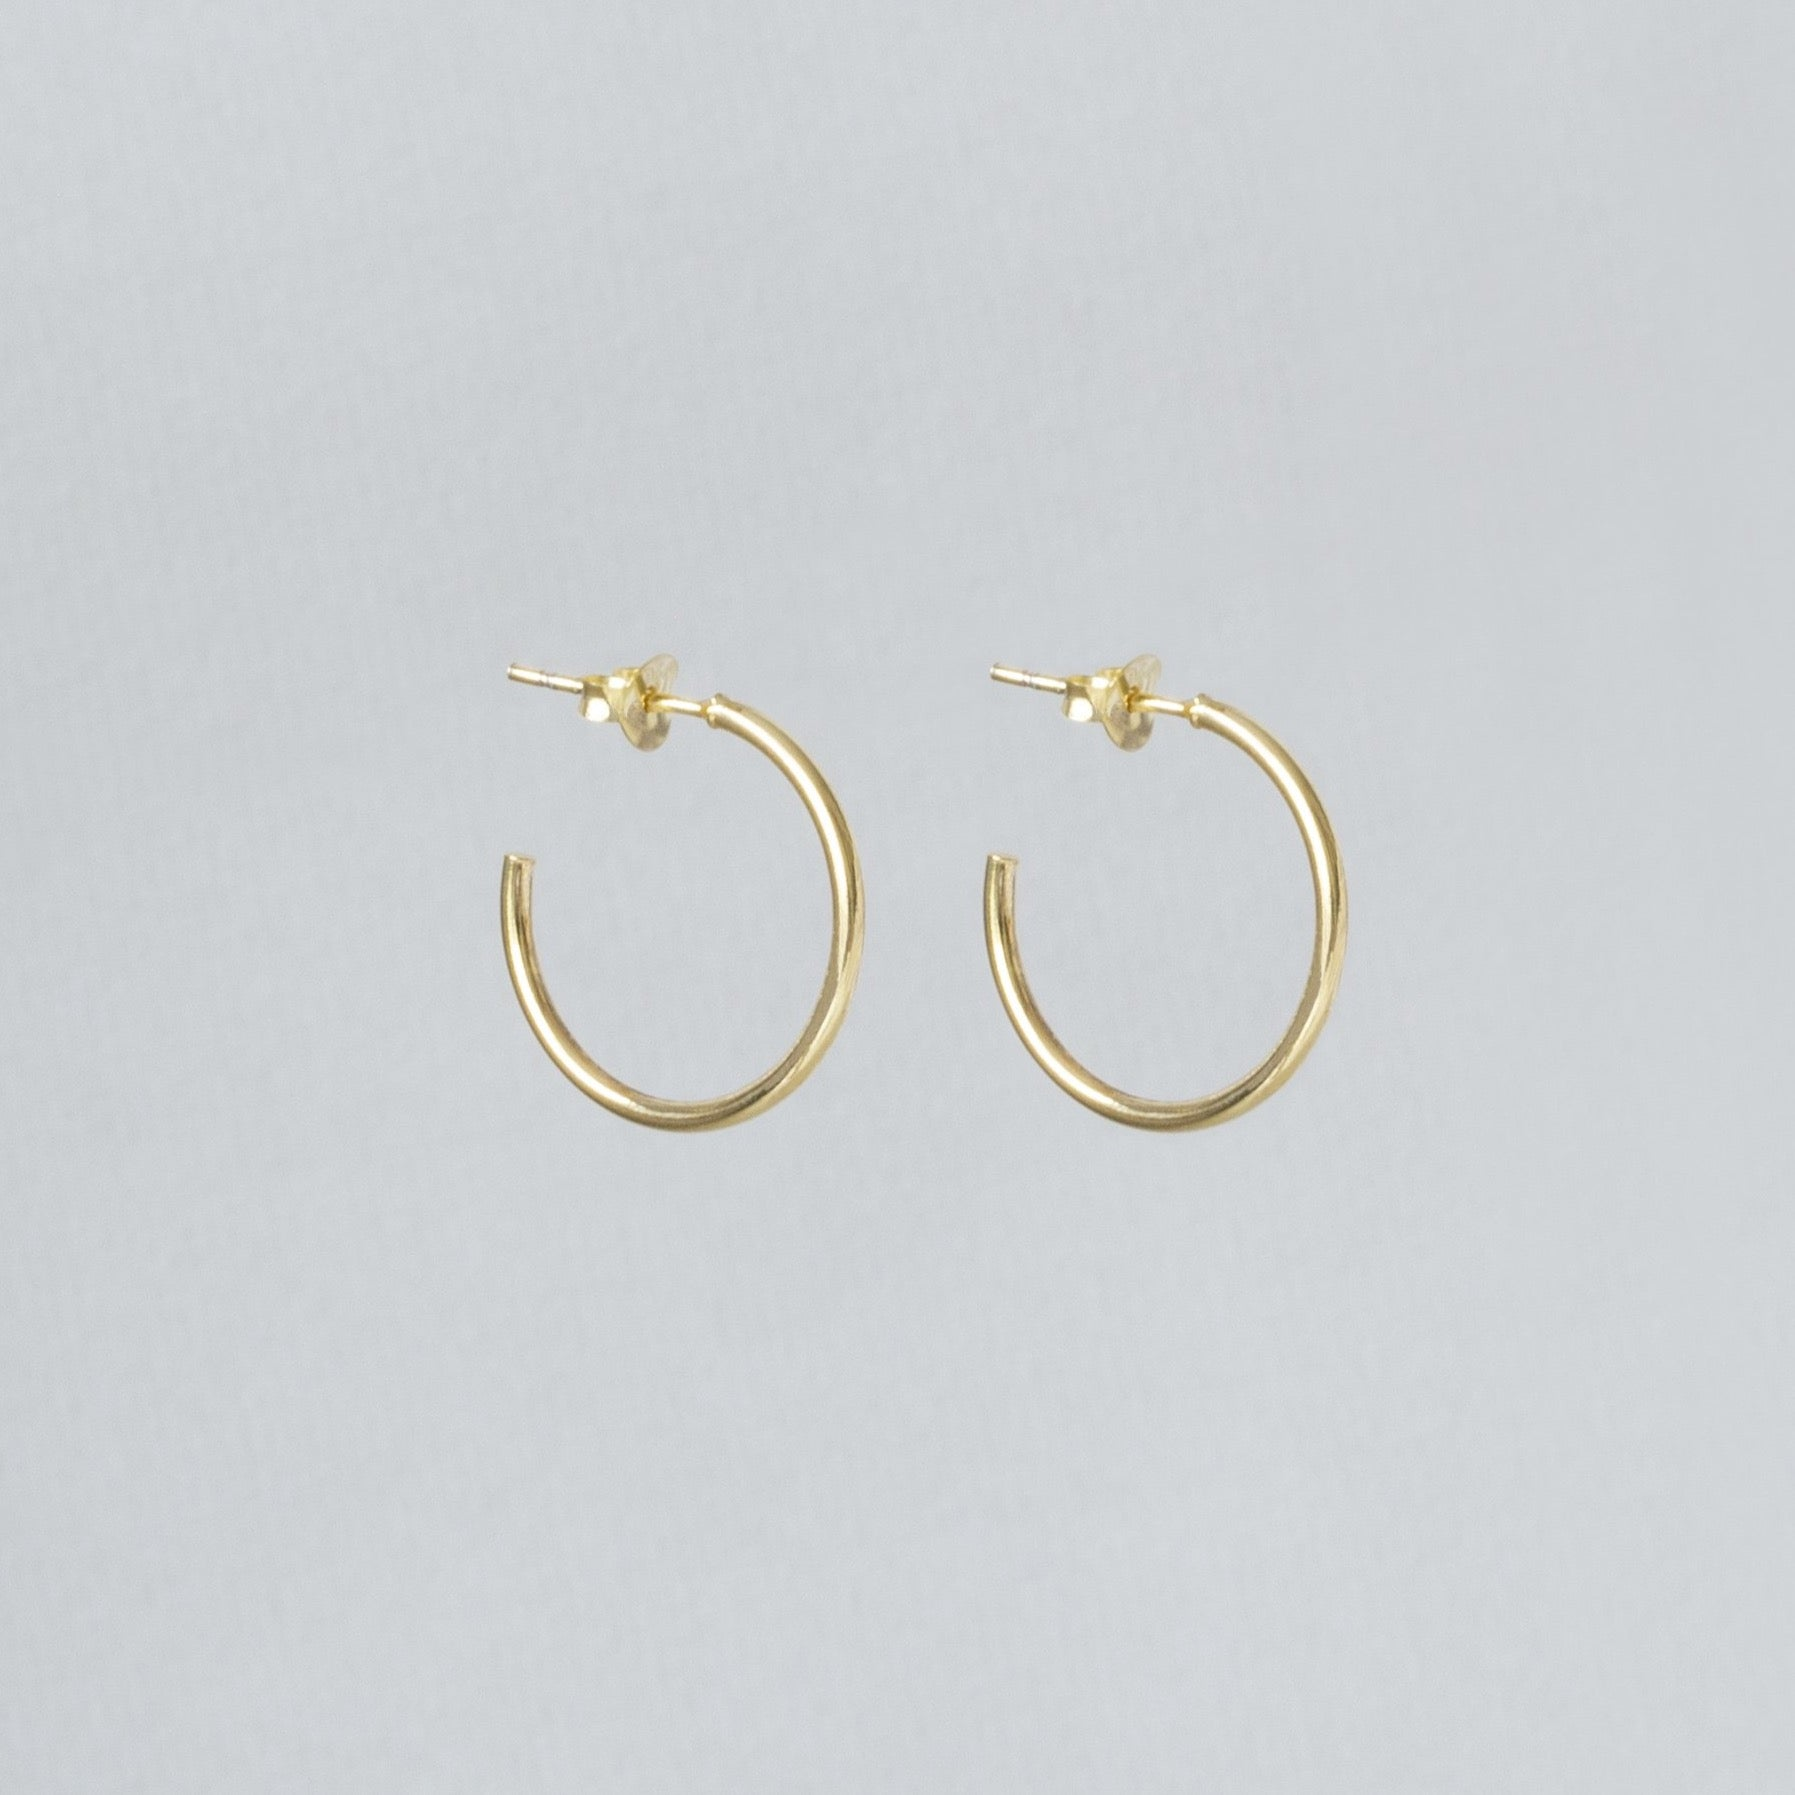 Gold Open Stud Hoop Earrings